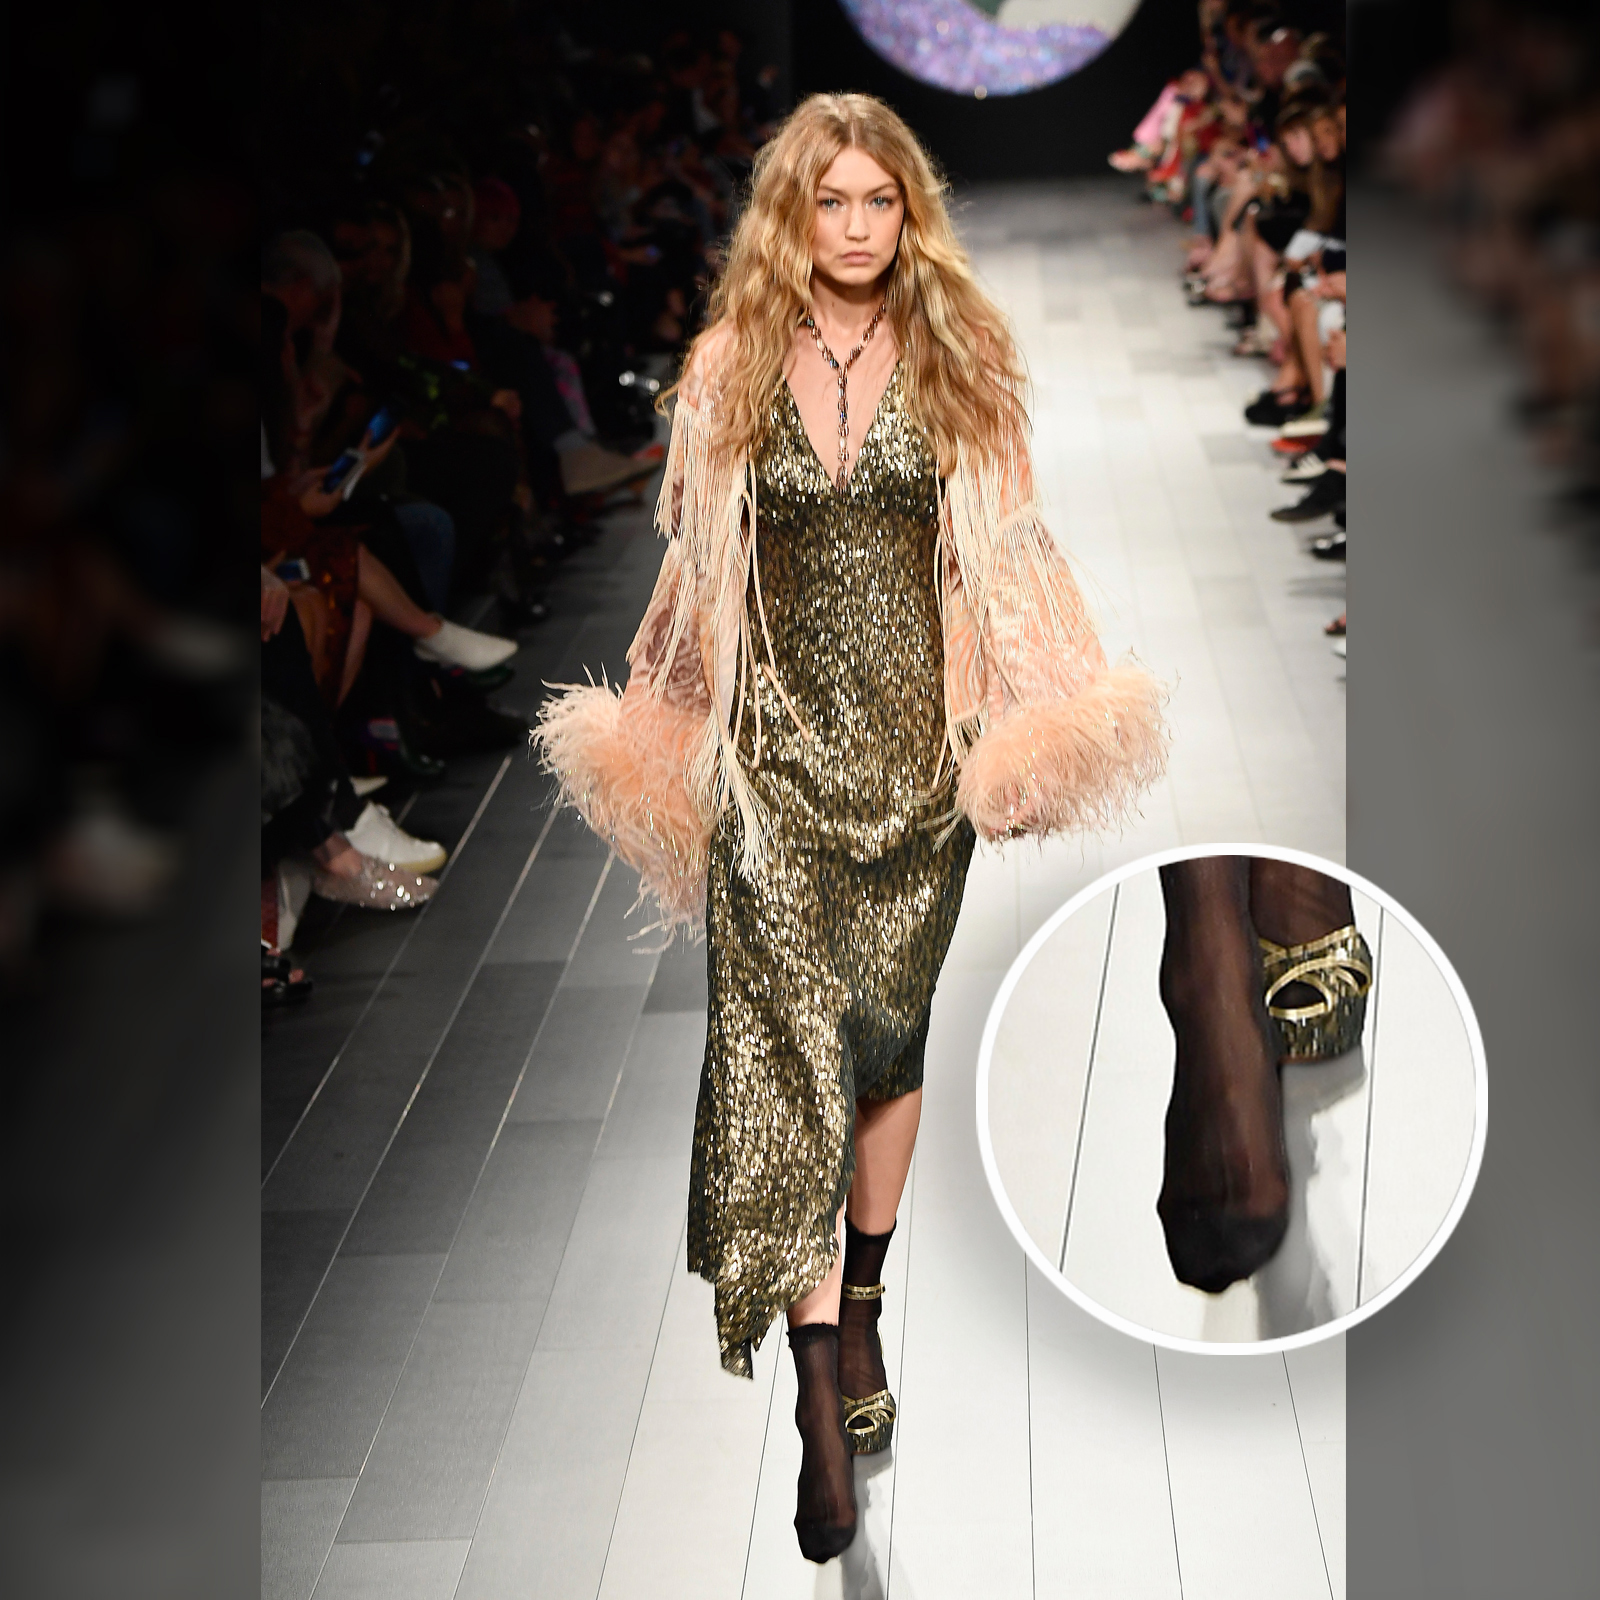 Gigi Hadid, fashion show, shoes, anna sui, sister, nyfw, bella hadid